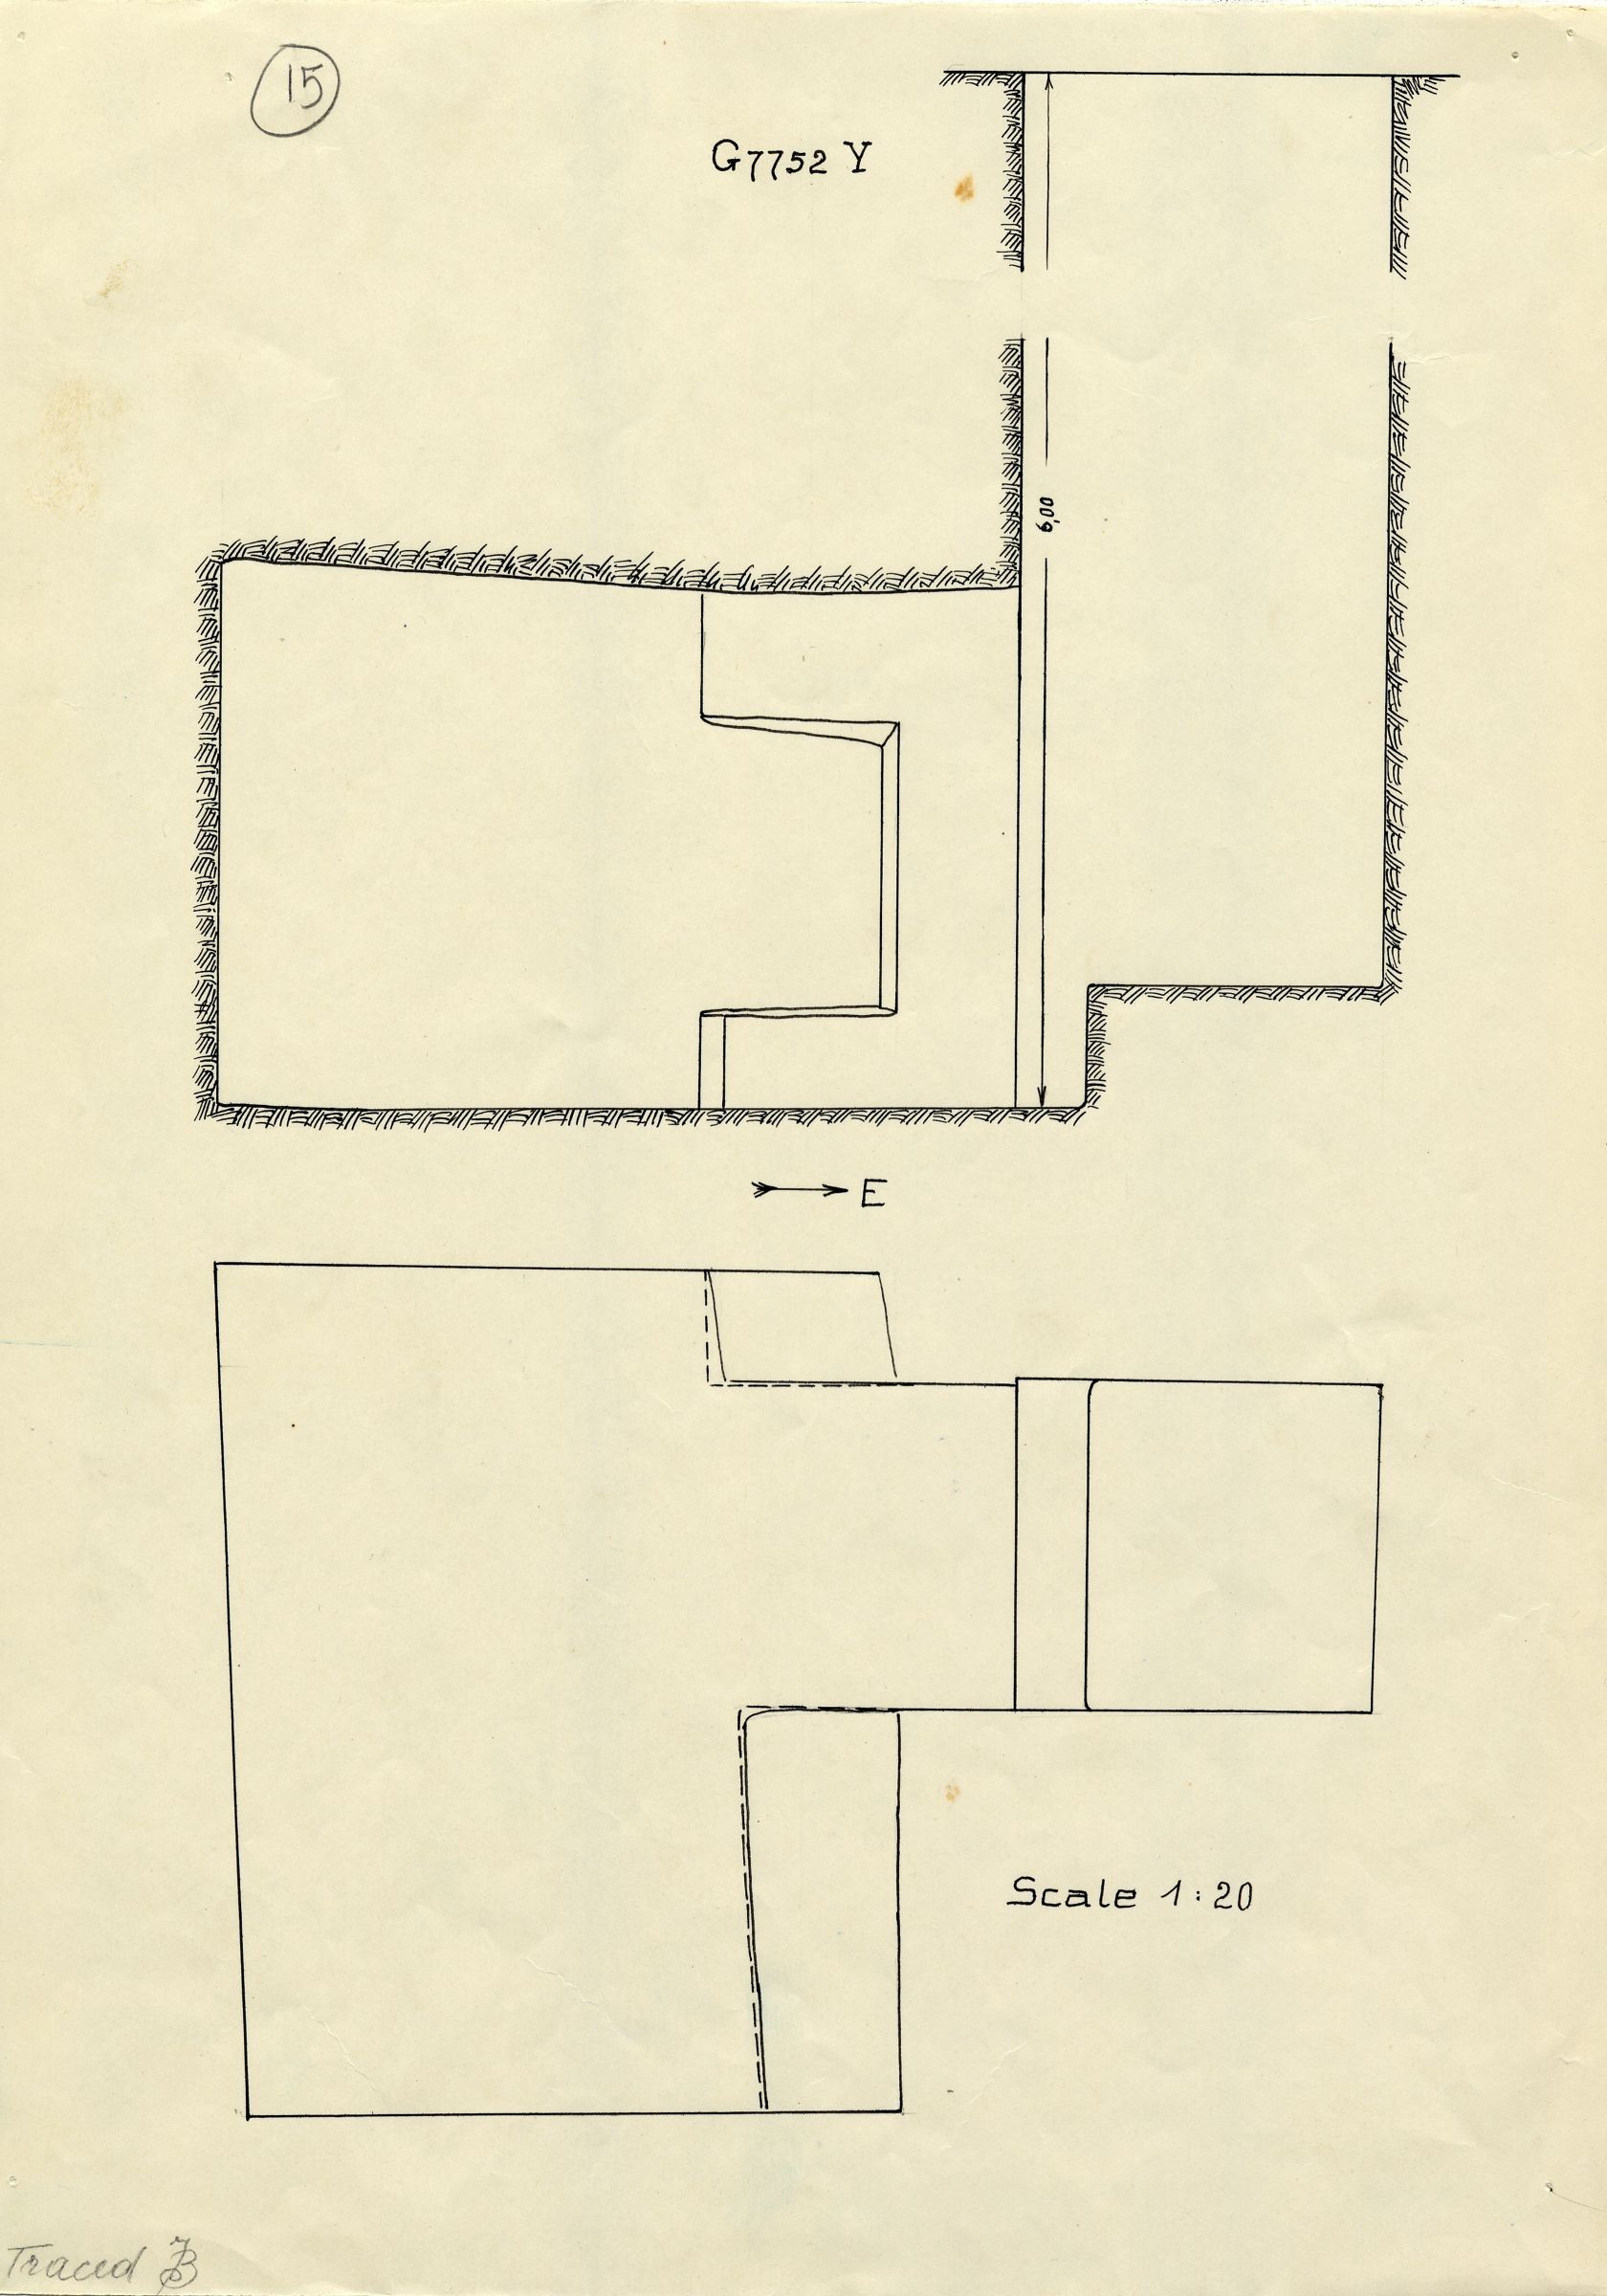 Maps and plans: G 7752, Shaft Y